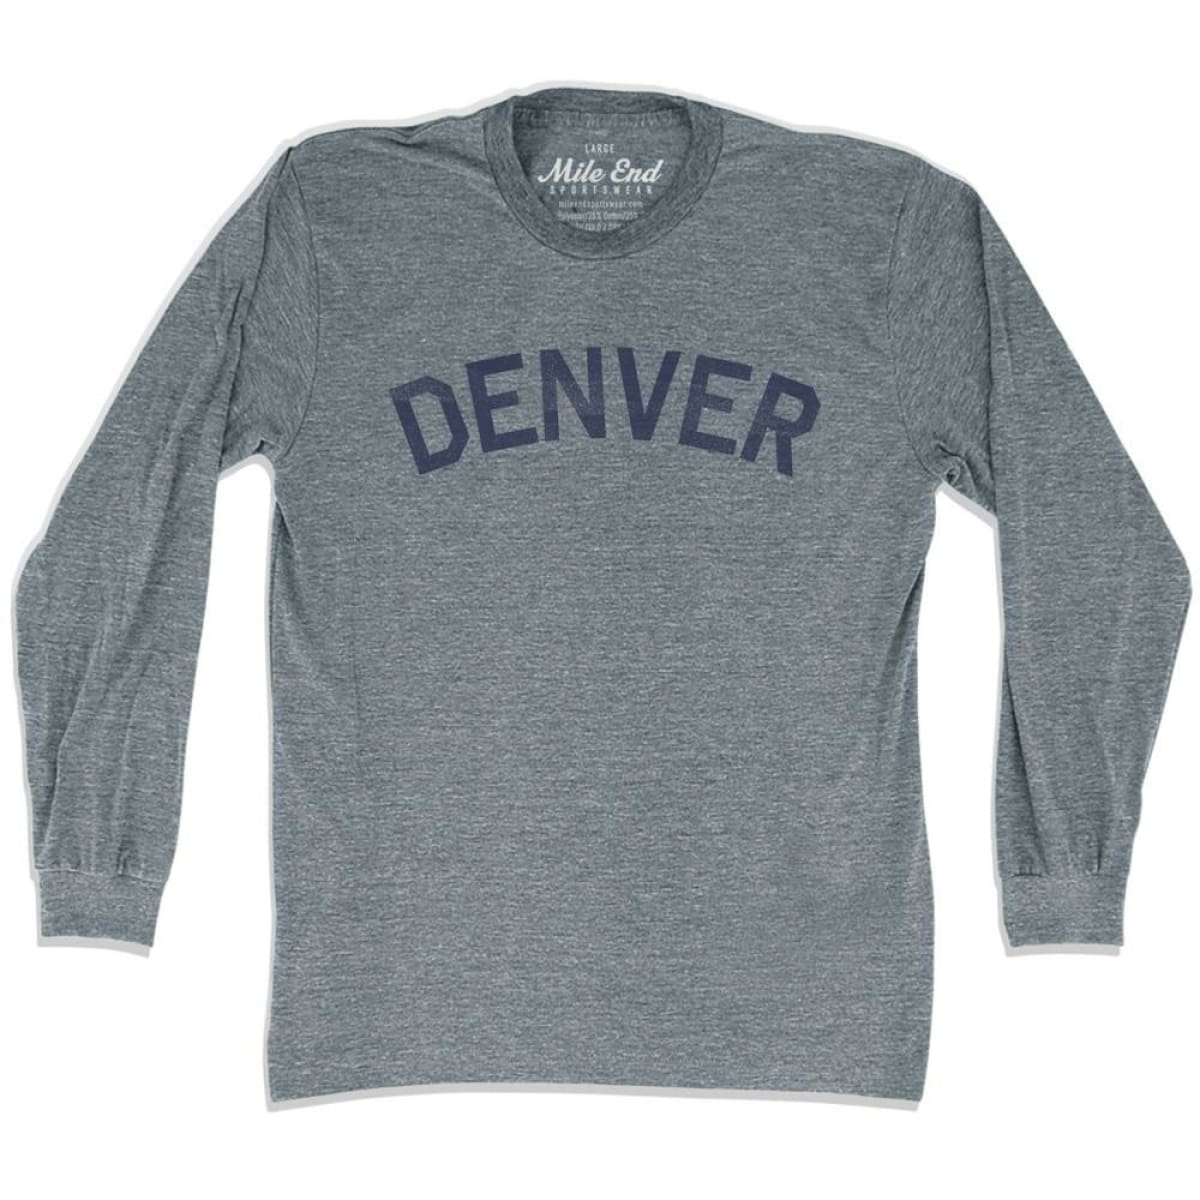 Denver City Vintage Long Sleeve T-Shirt - Athletic Grey / Adult X-Small - Mile End City